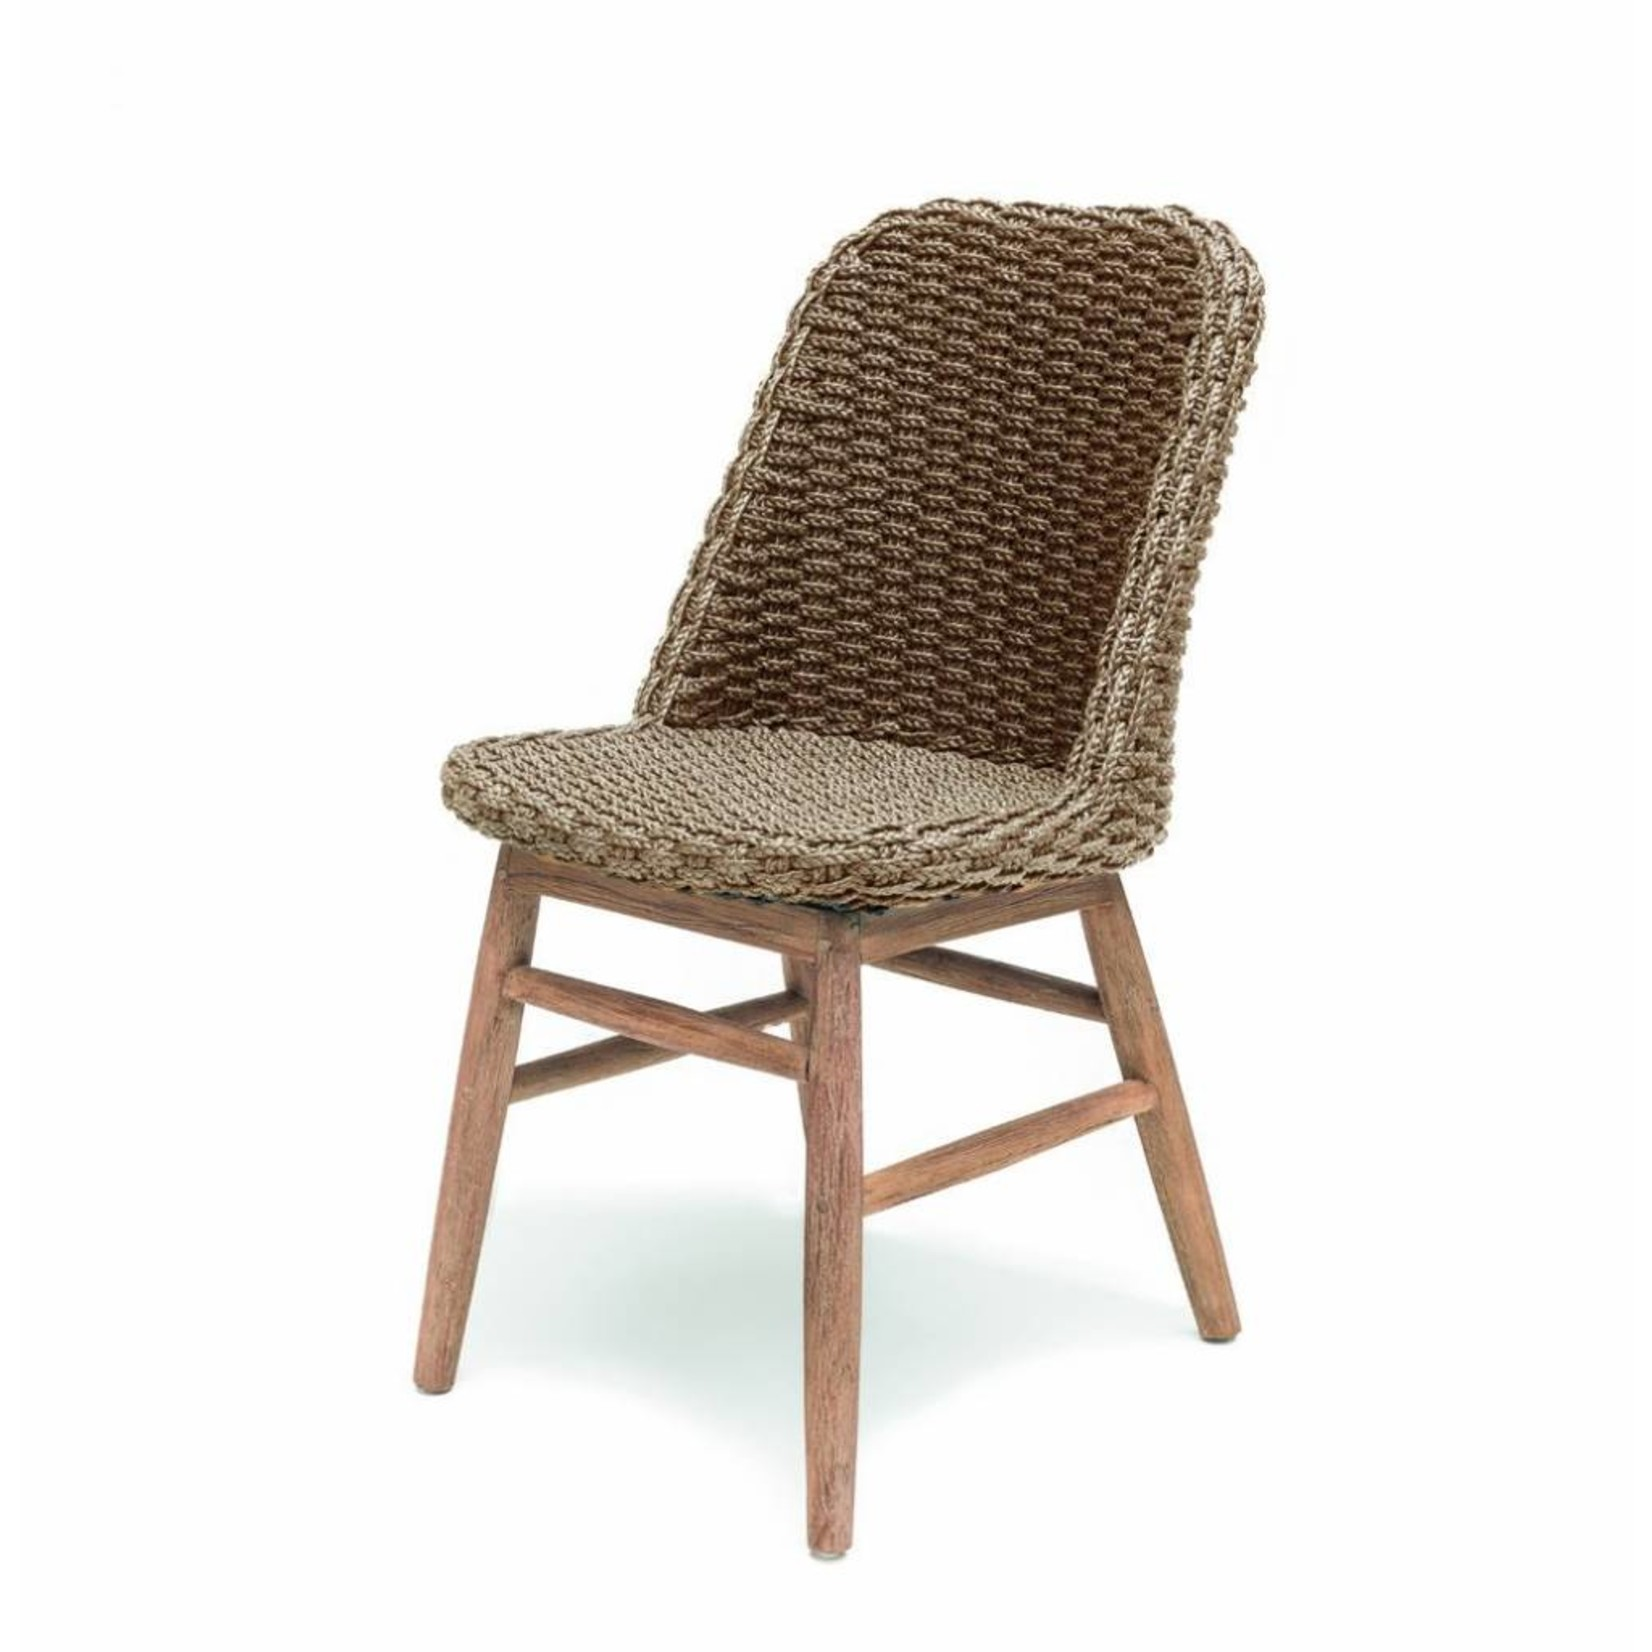 Gommaire Chair Sienna | Reclaimed Teak Natural Gray / PE Wicker Natural